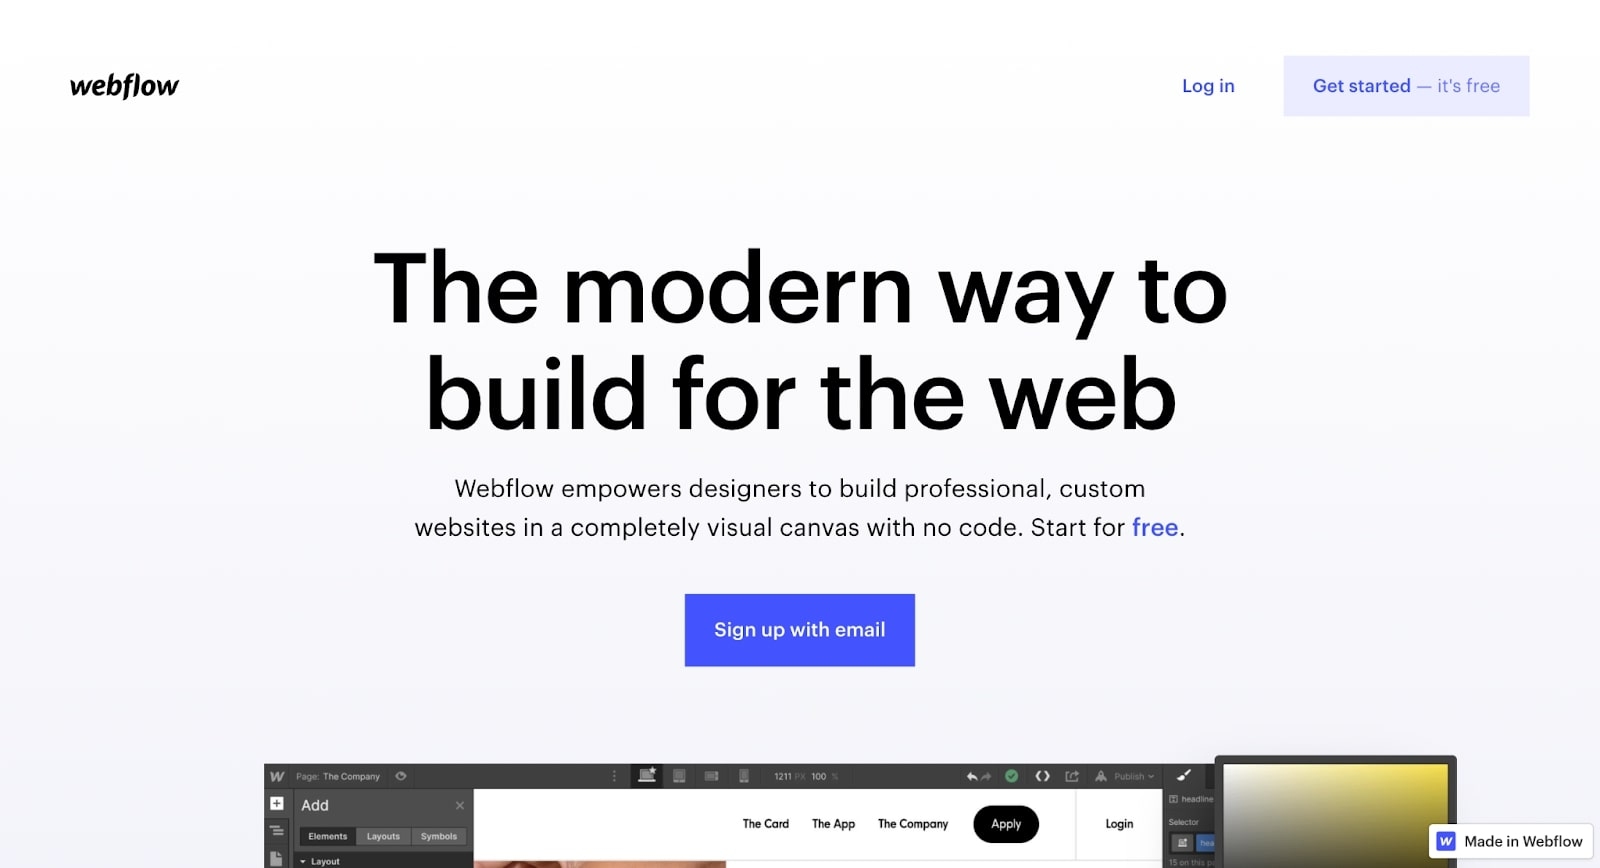 An image of the Webflow home page.